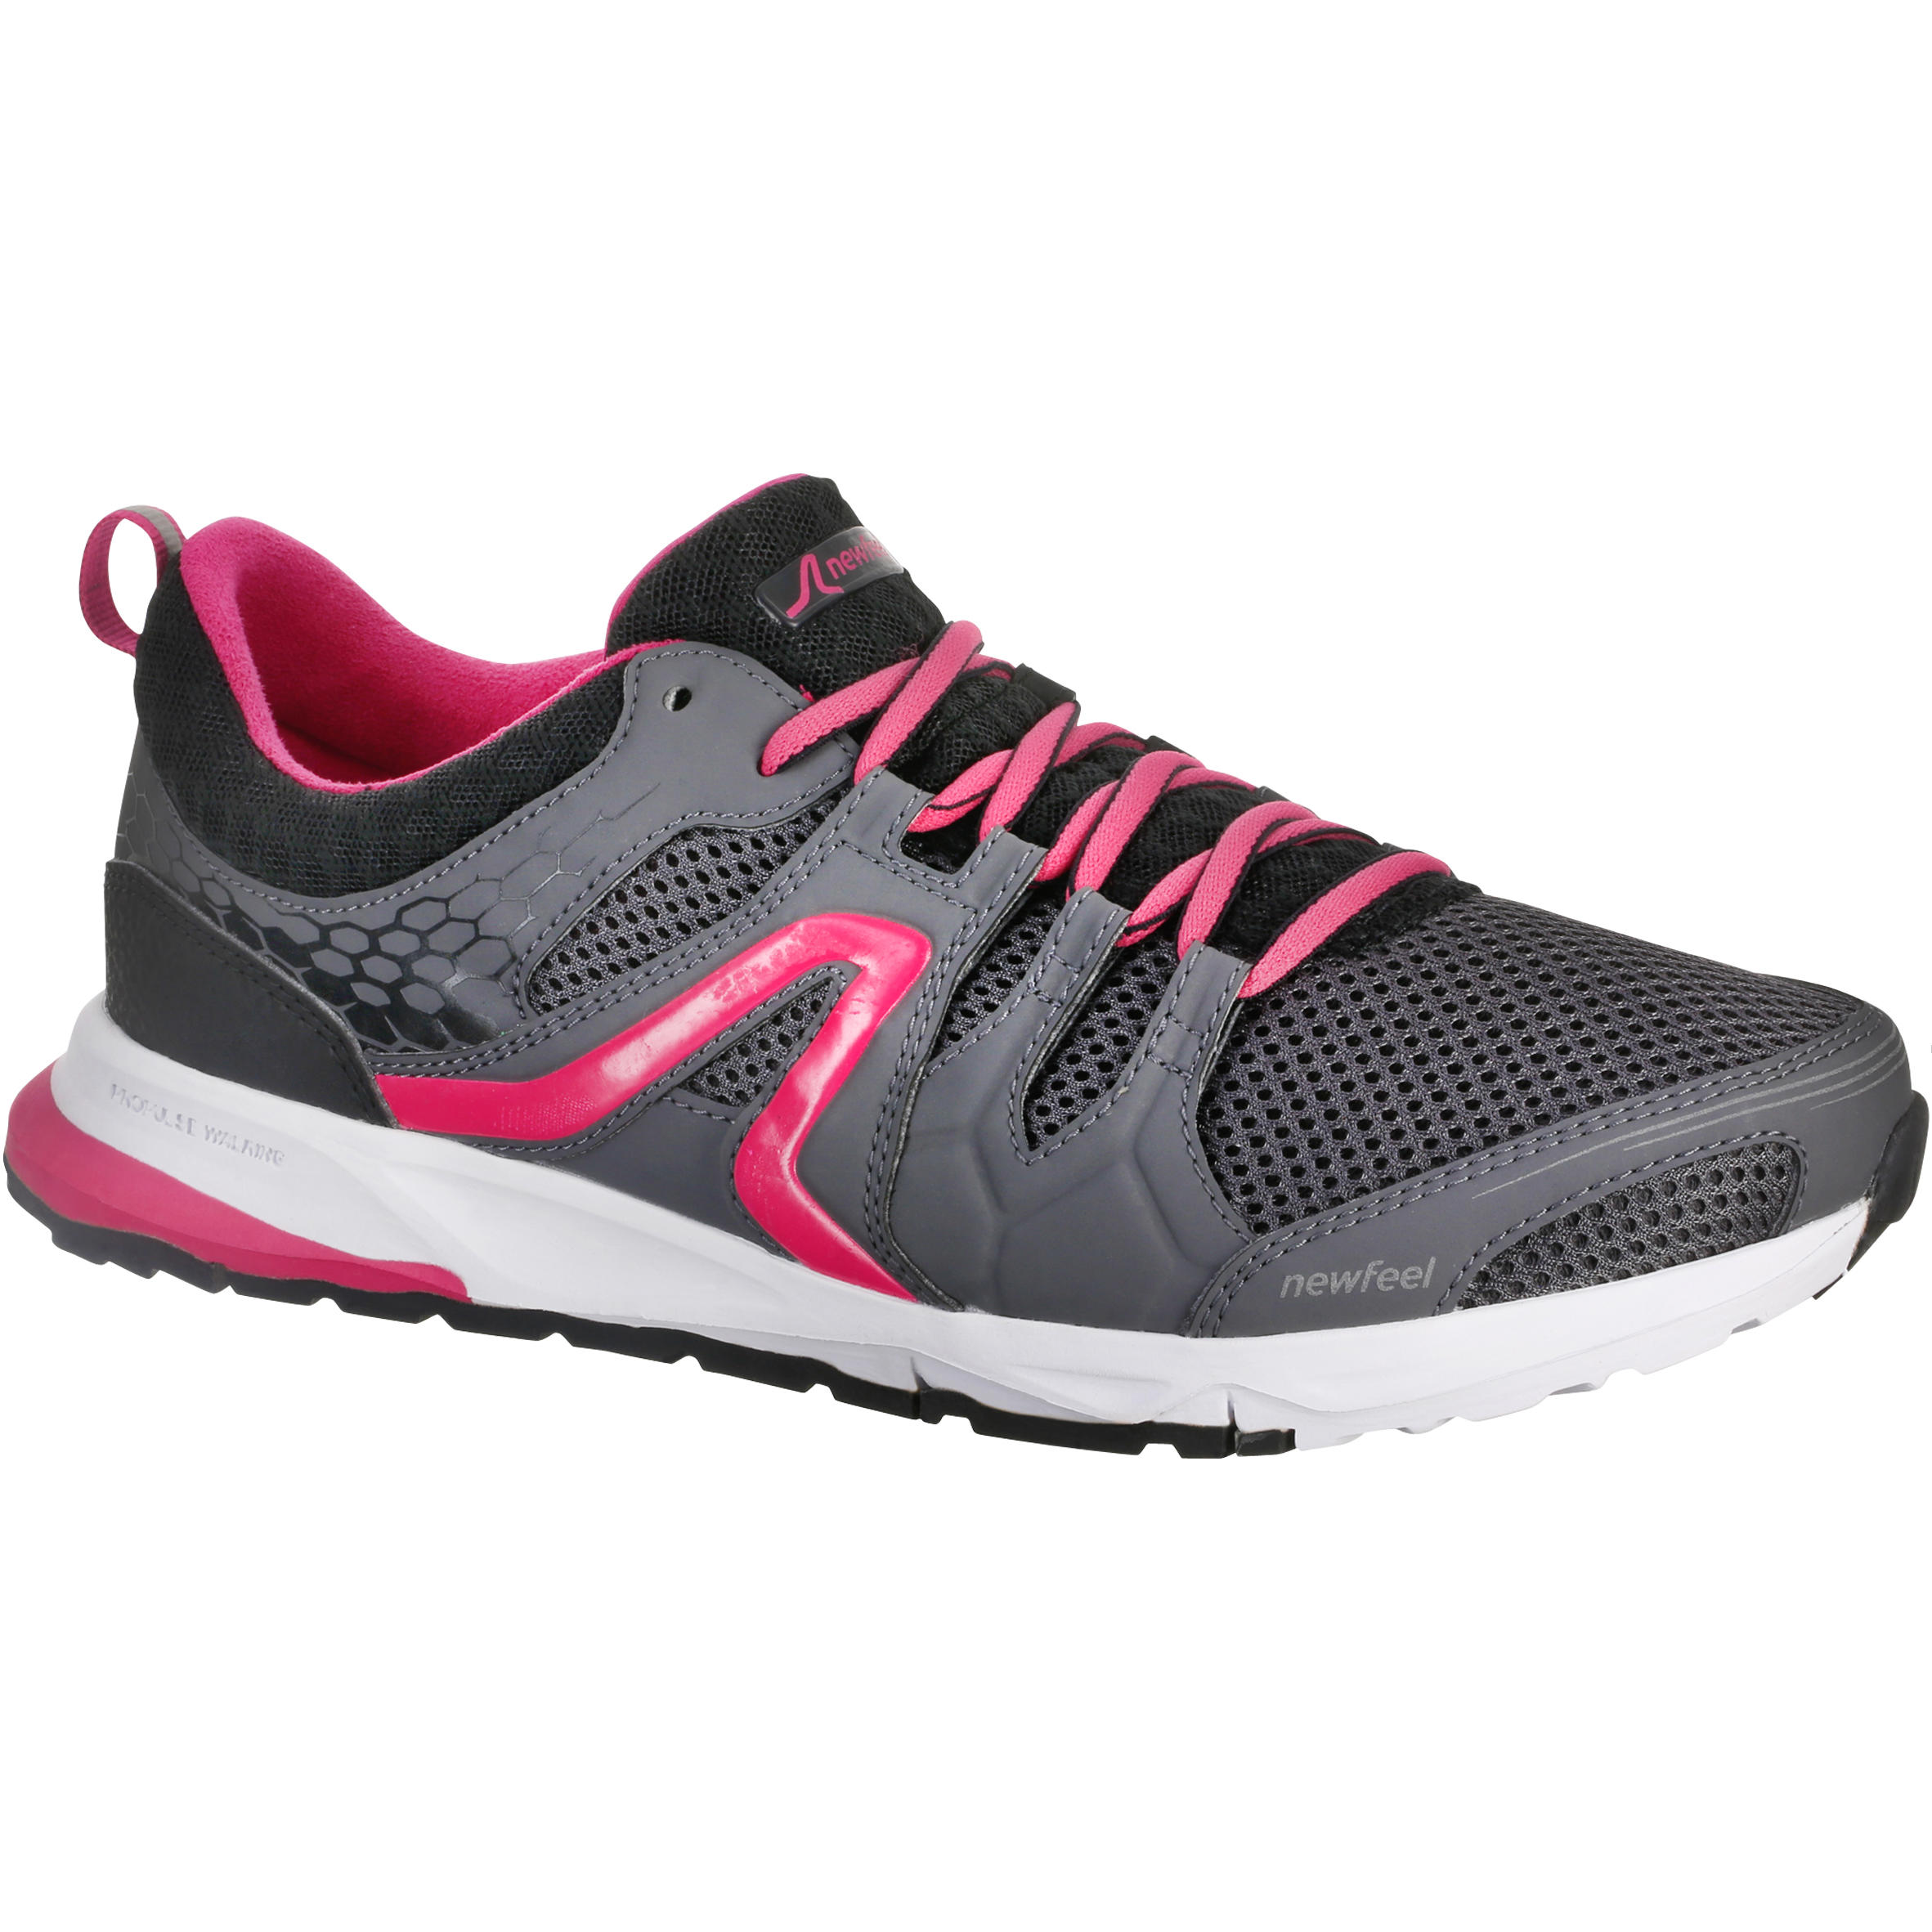 Newfeel Damessneakers PW 240